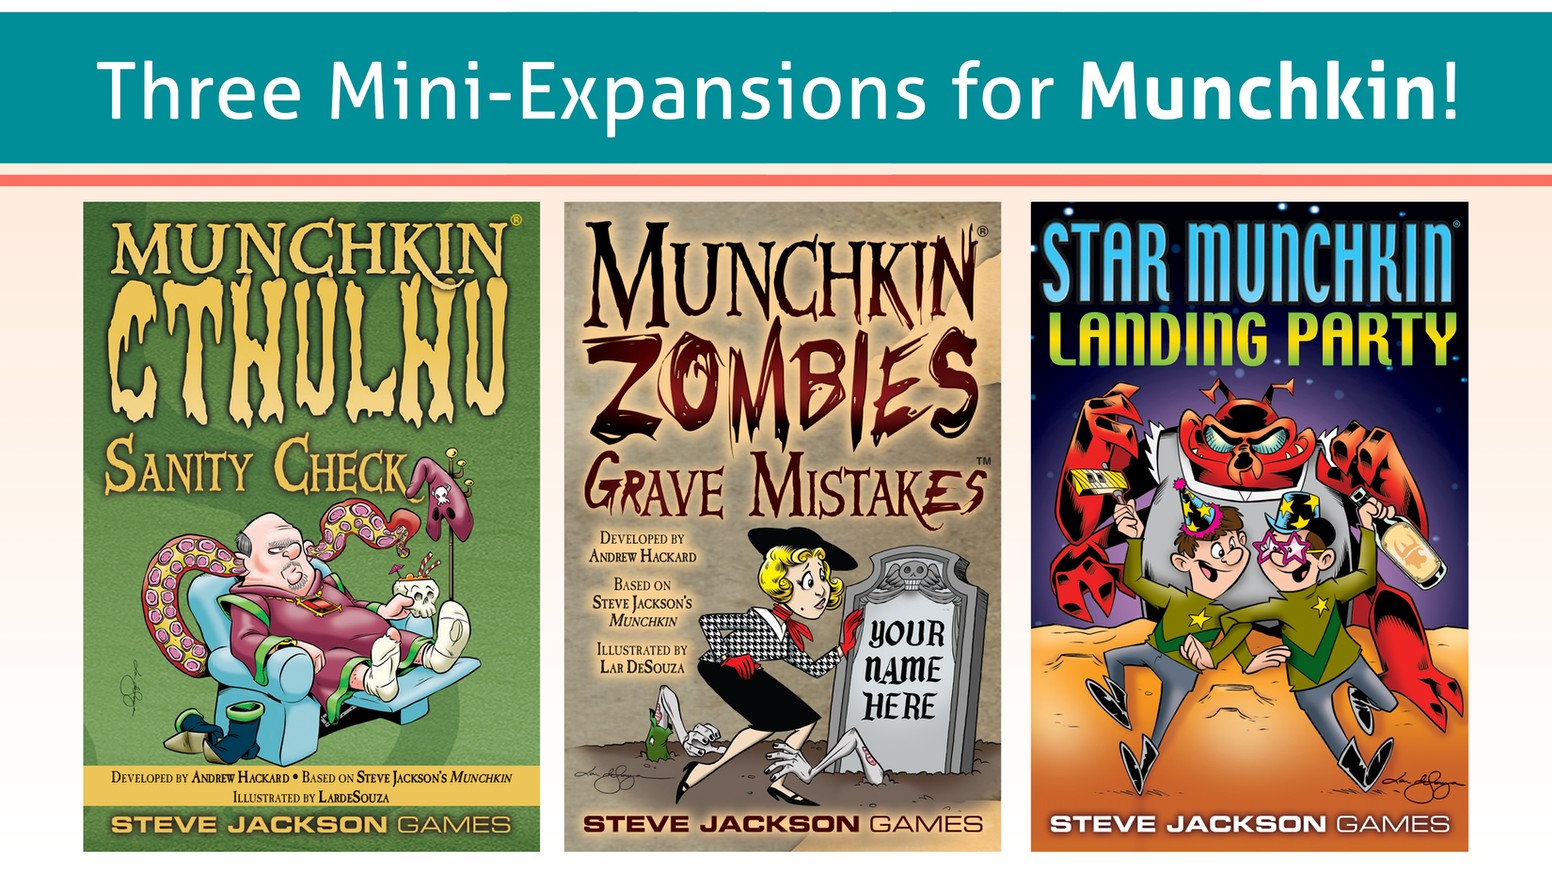 Three mini-expansions for use with three of our most popular Munchkin games: Munchkin Cthulhu, Munchkin Zombies, and Star Munchkin!